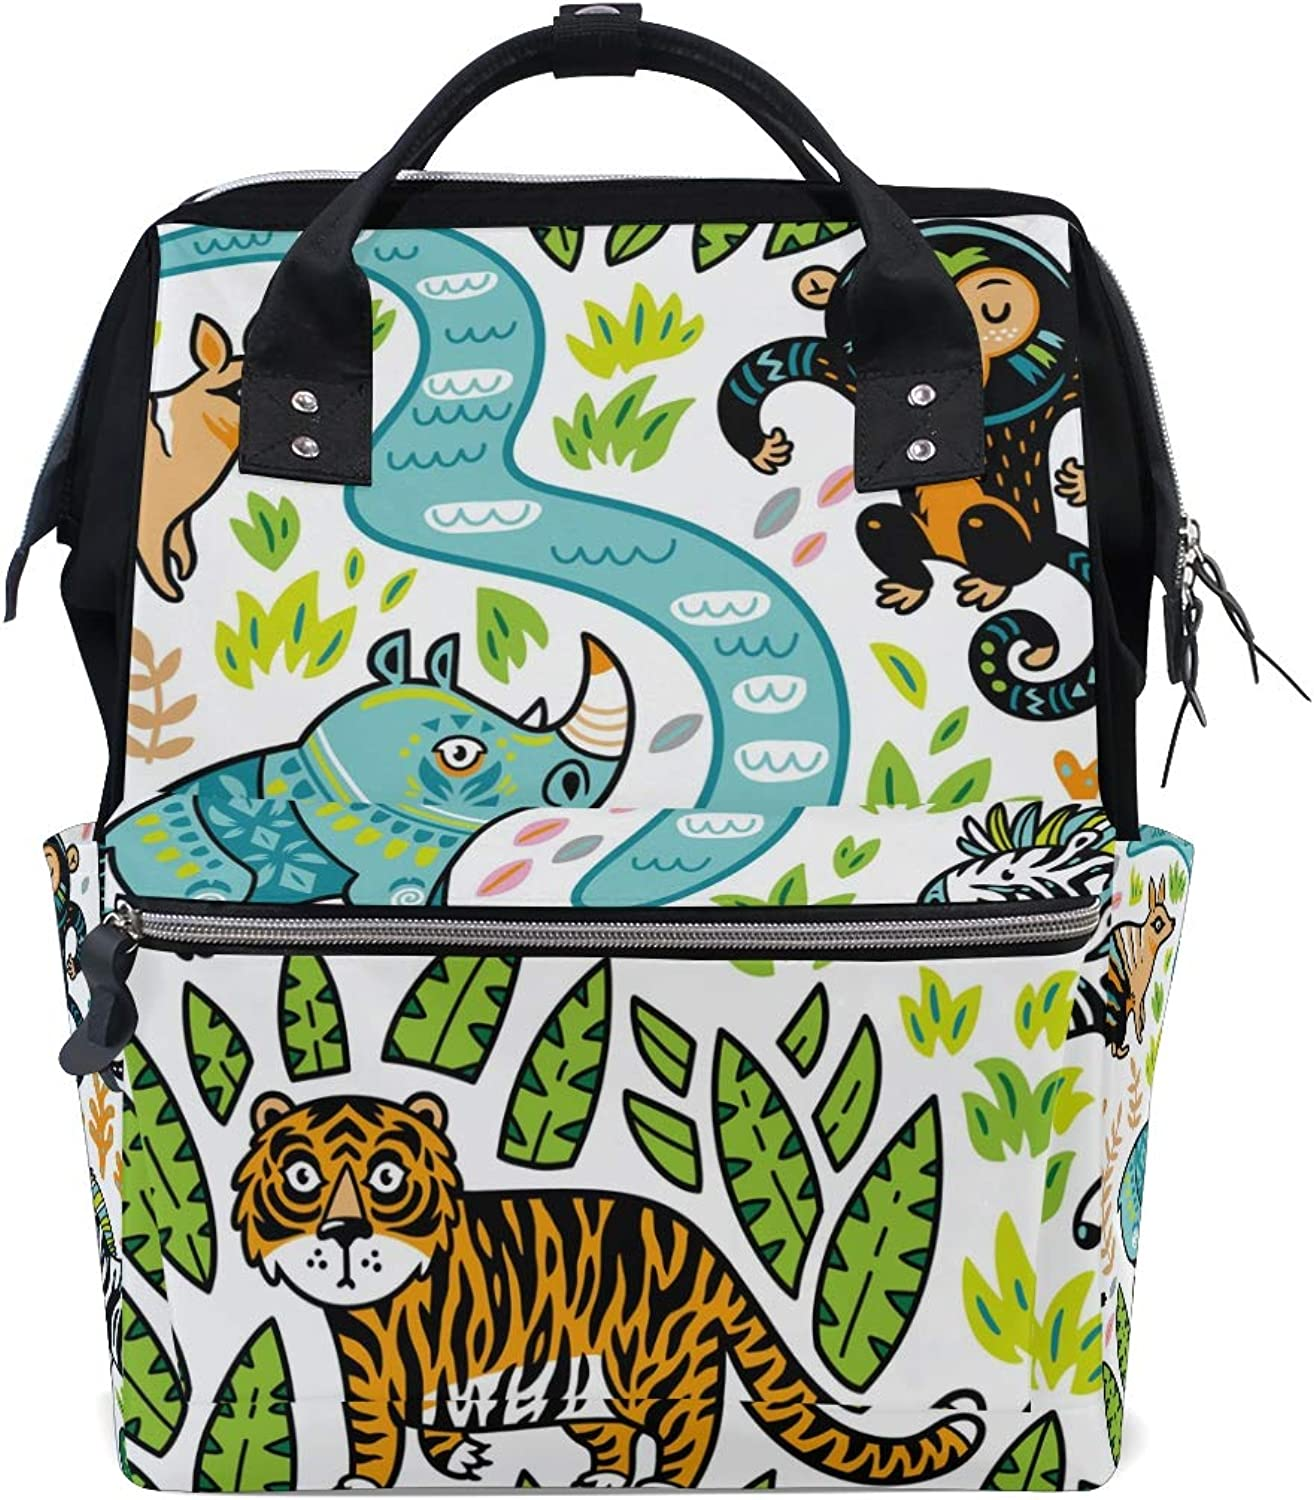 ColourLife Diaper bag Backpack Forest Animals Tote Bag Casual Daypack Multifunctional Nappy Bags